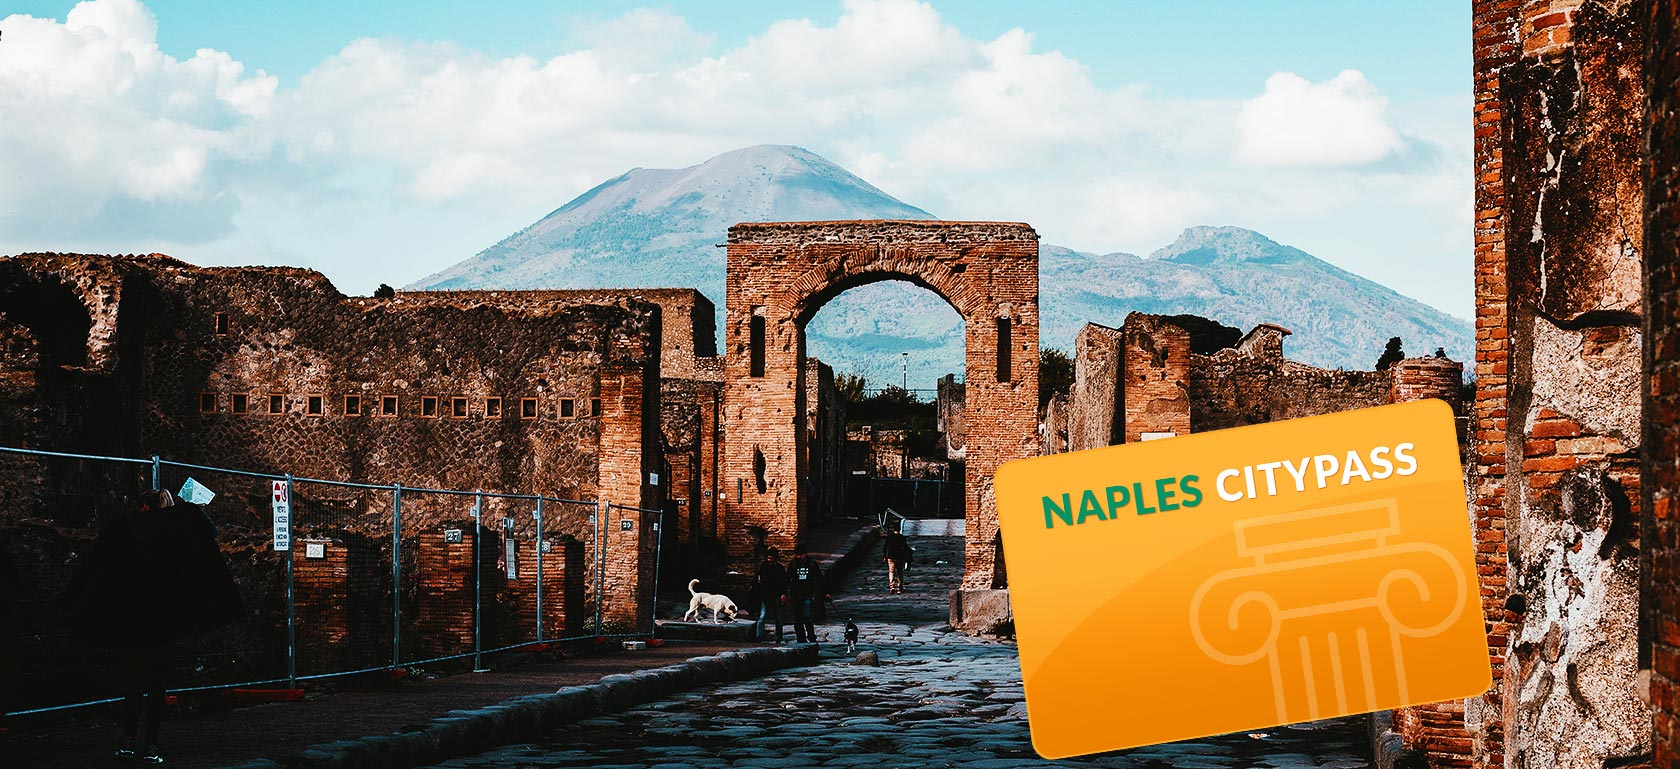 Le Naples City Pass